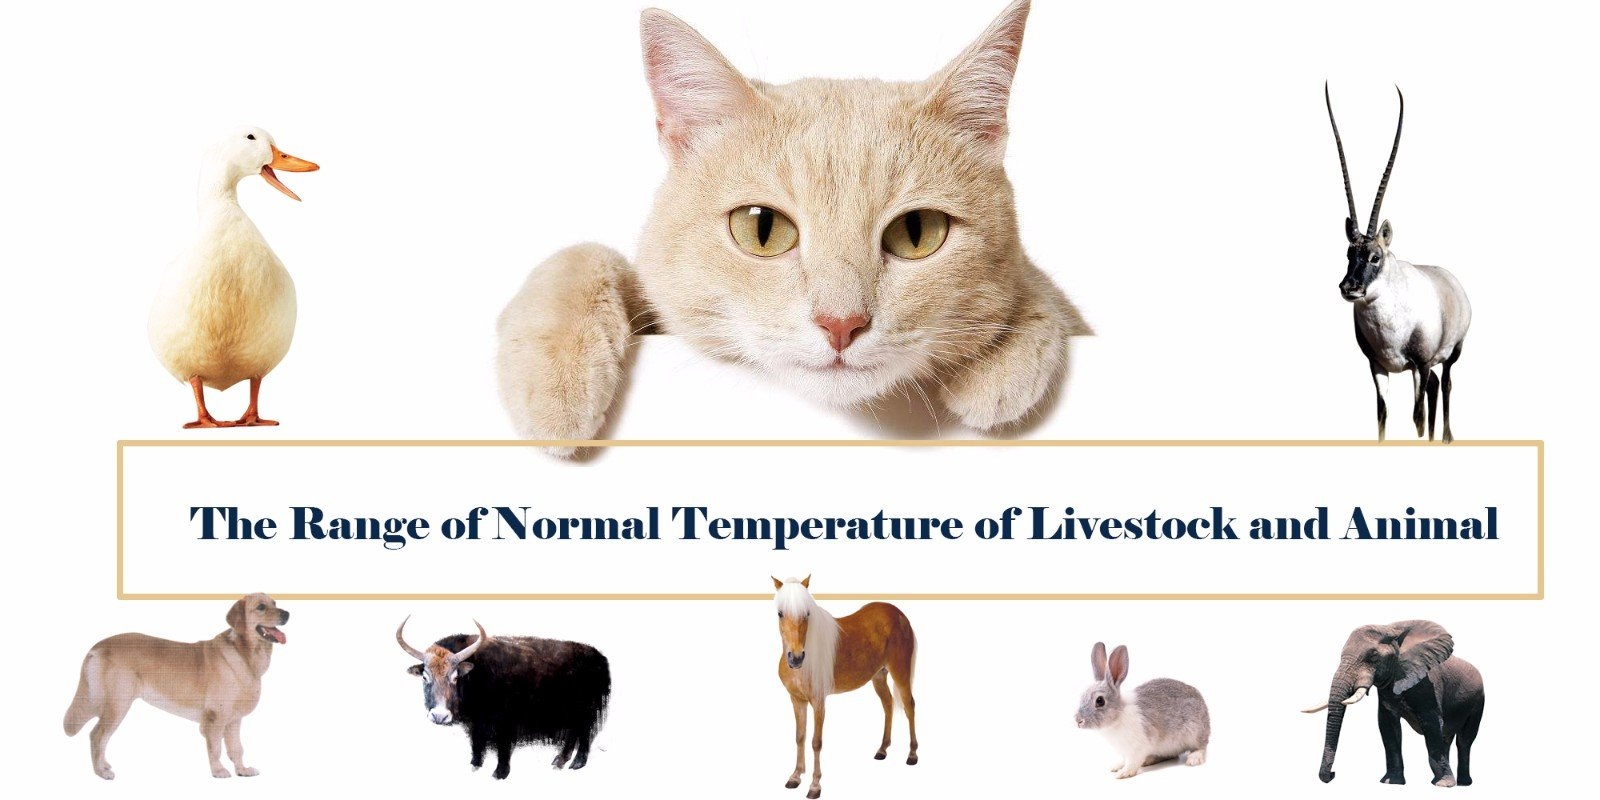 The Range of Normal Temperature of Livestock and Animal